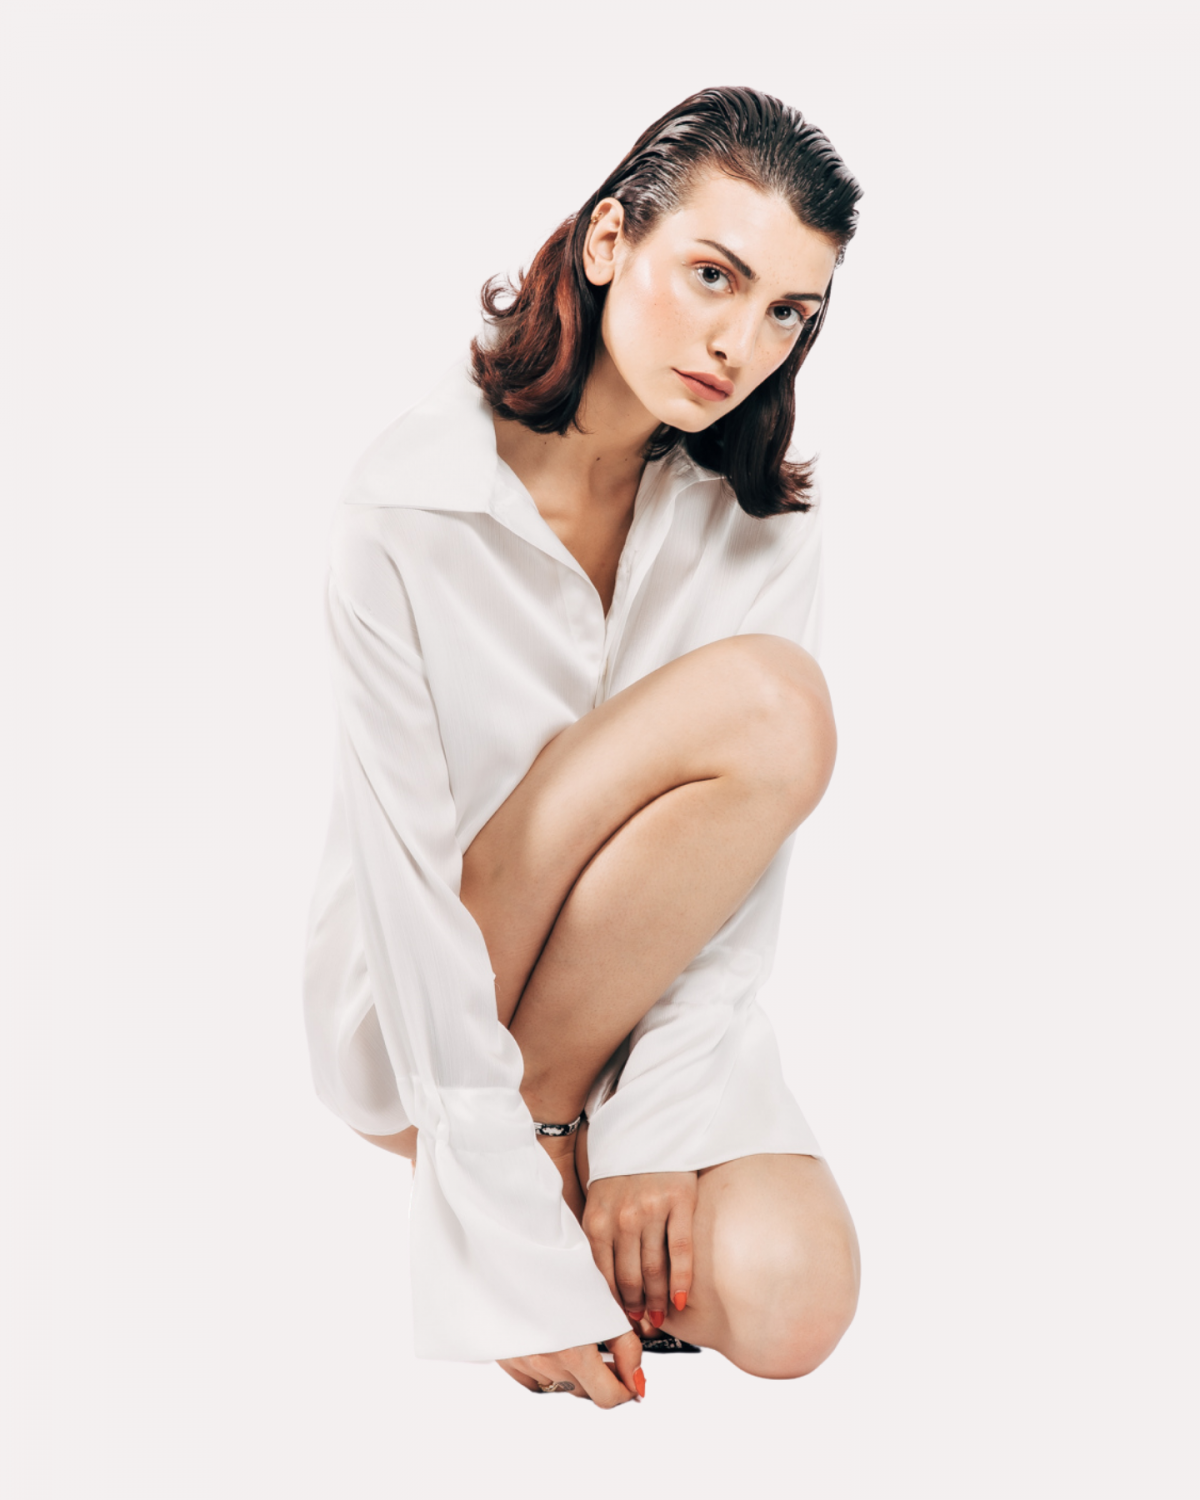 chemise femme blanc marque zwitter made in france